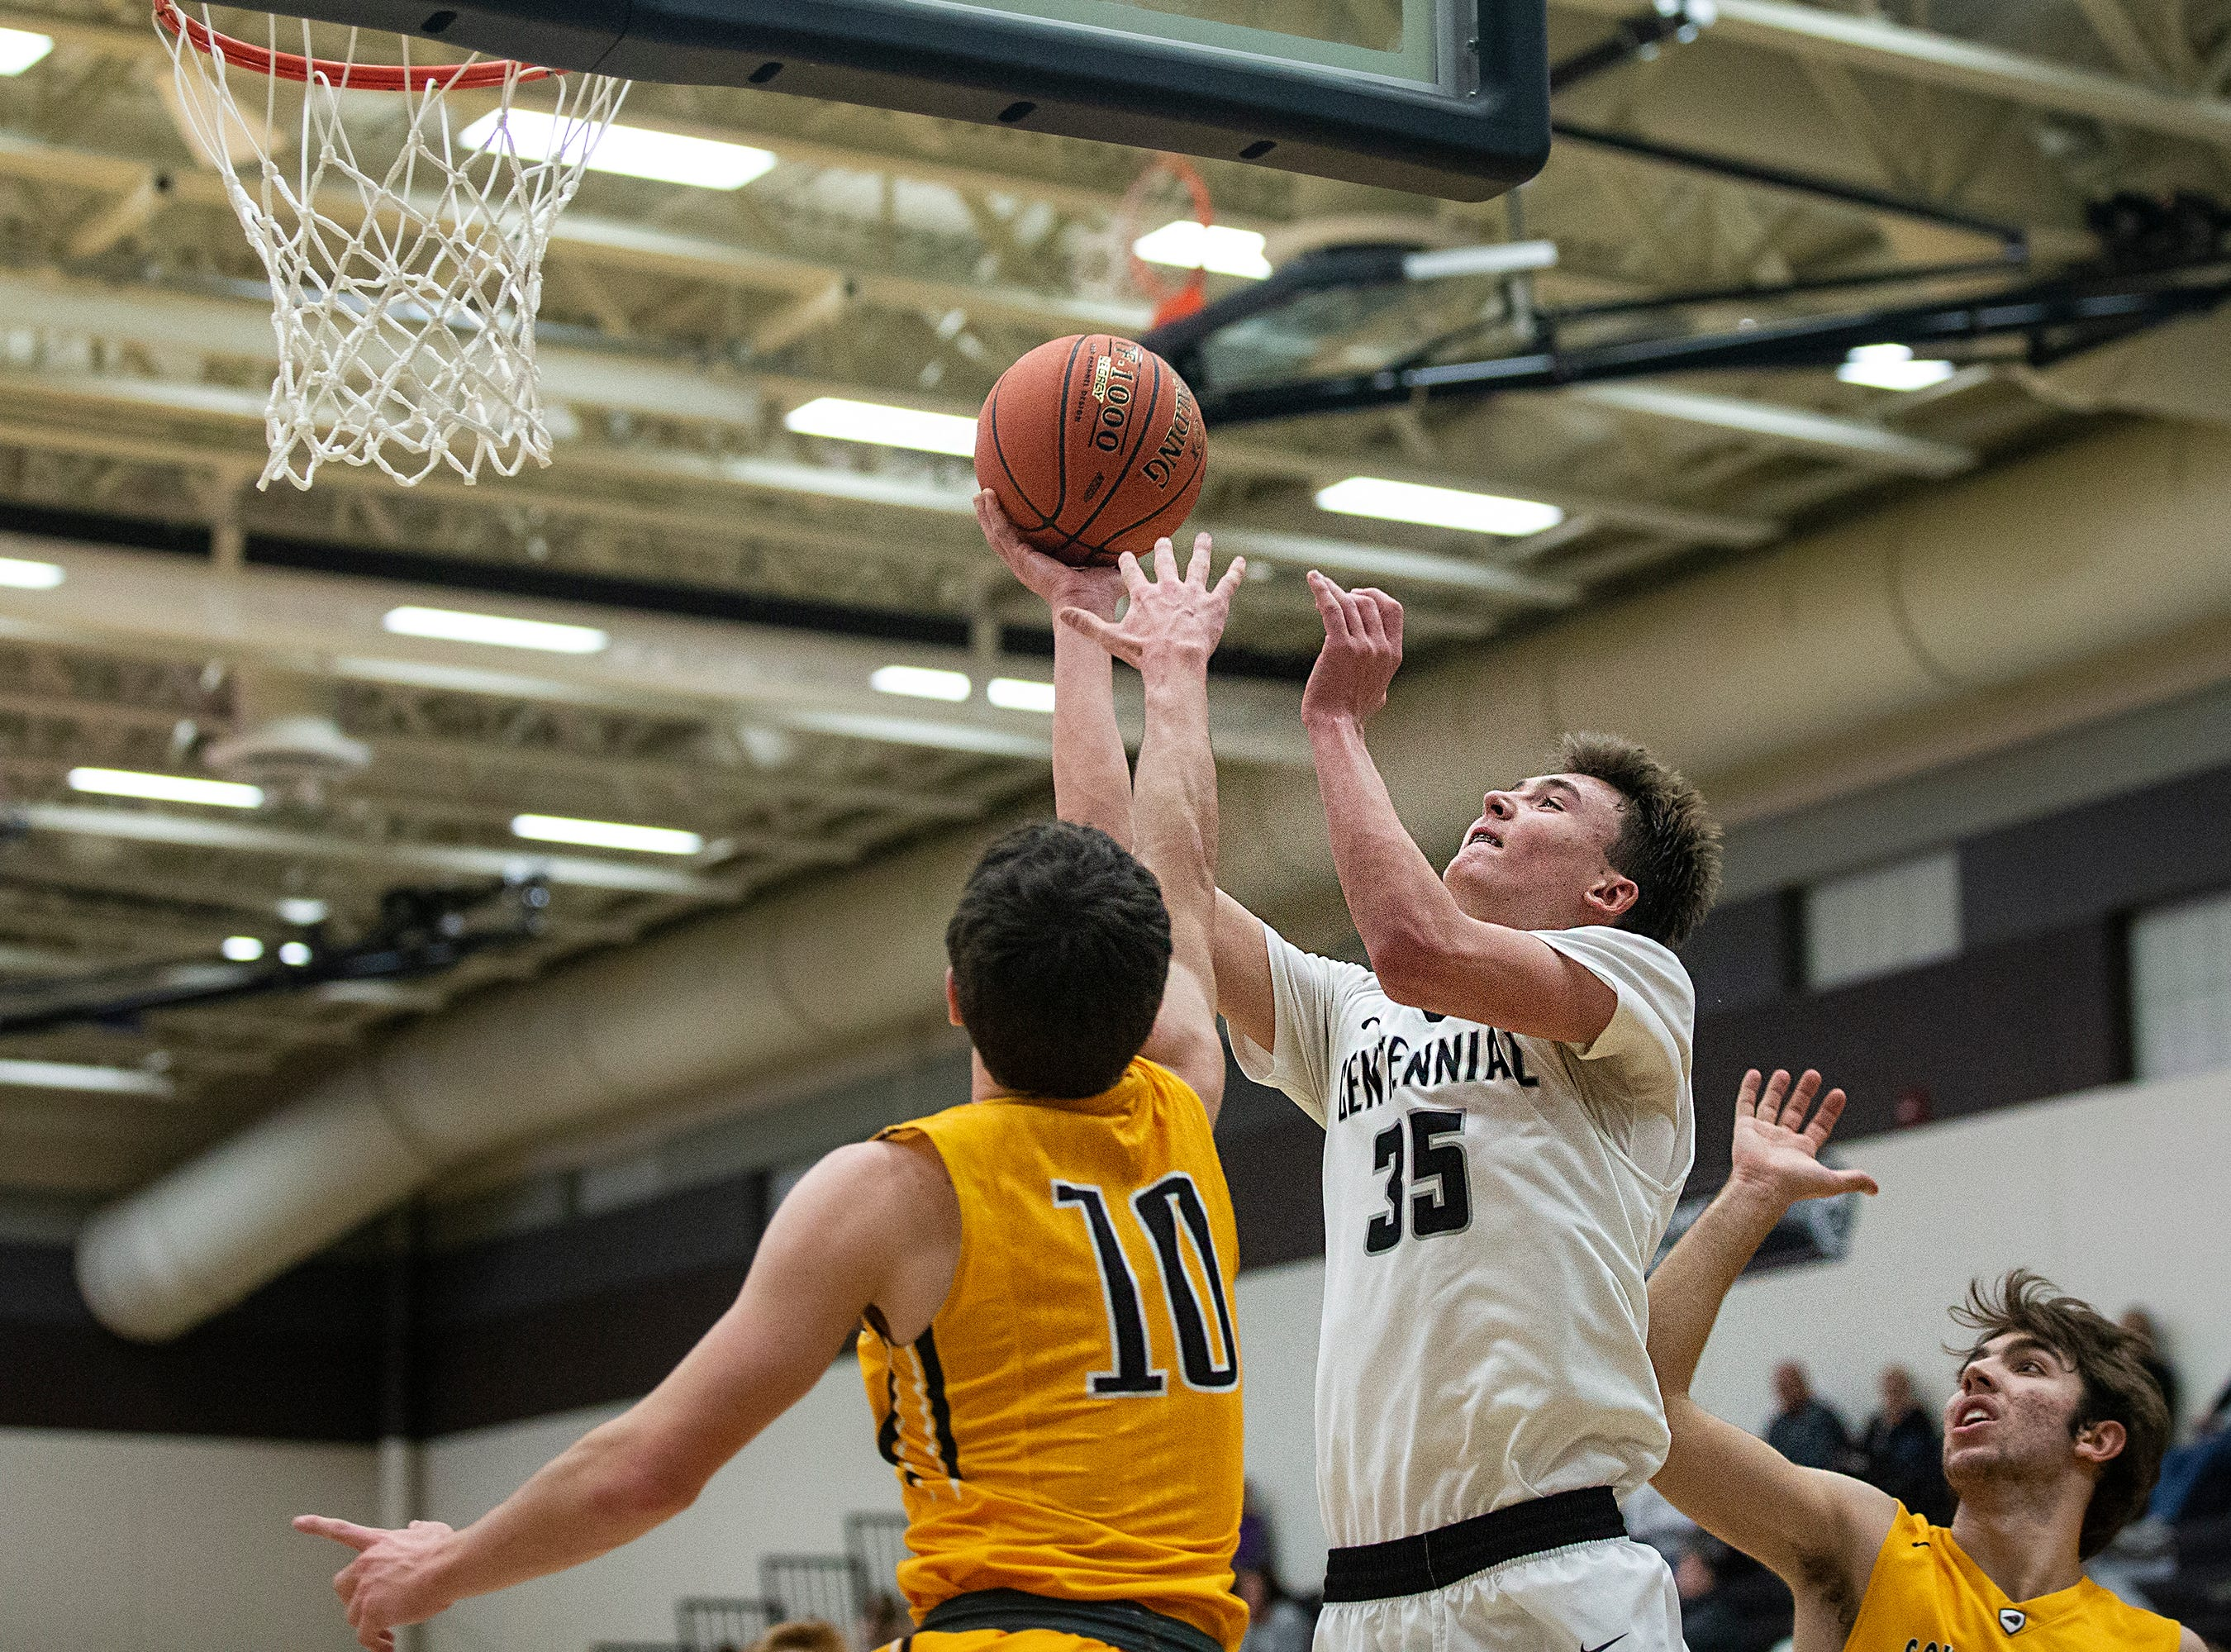 Centennial's Cody McCullough shoots the ball during the Southeast Polk vs. Ankeny Centennial boy's basketball game on Tuesday, Nov. 27, 2018, at Ankeny Centennial High School.